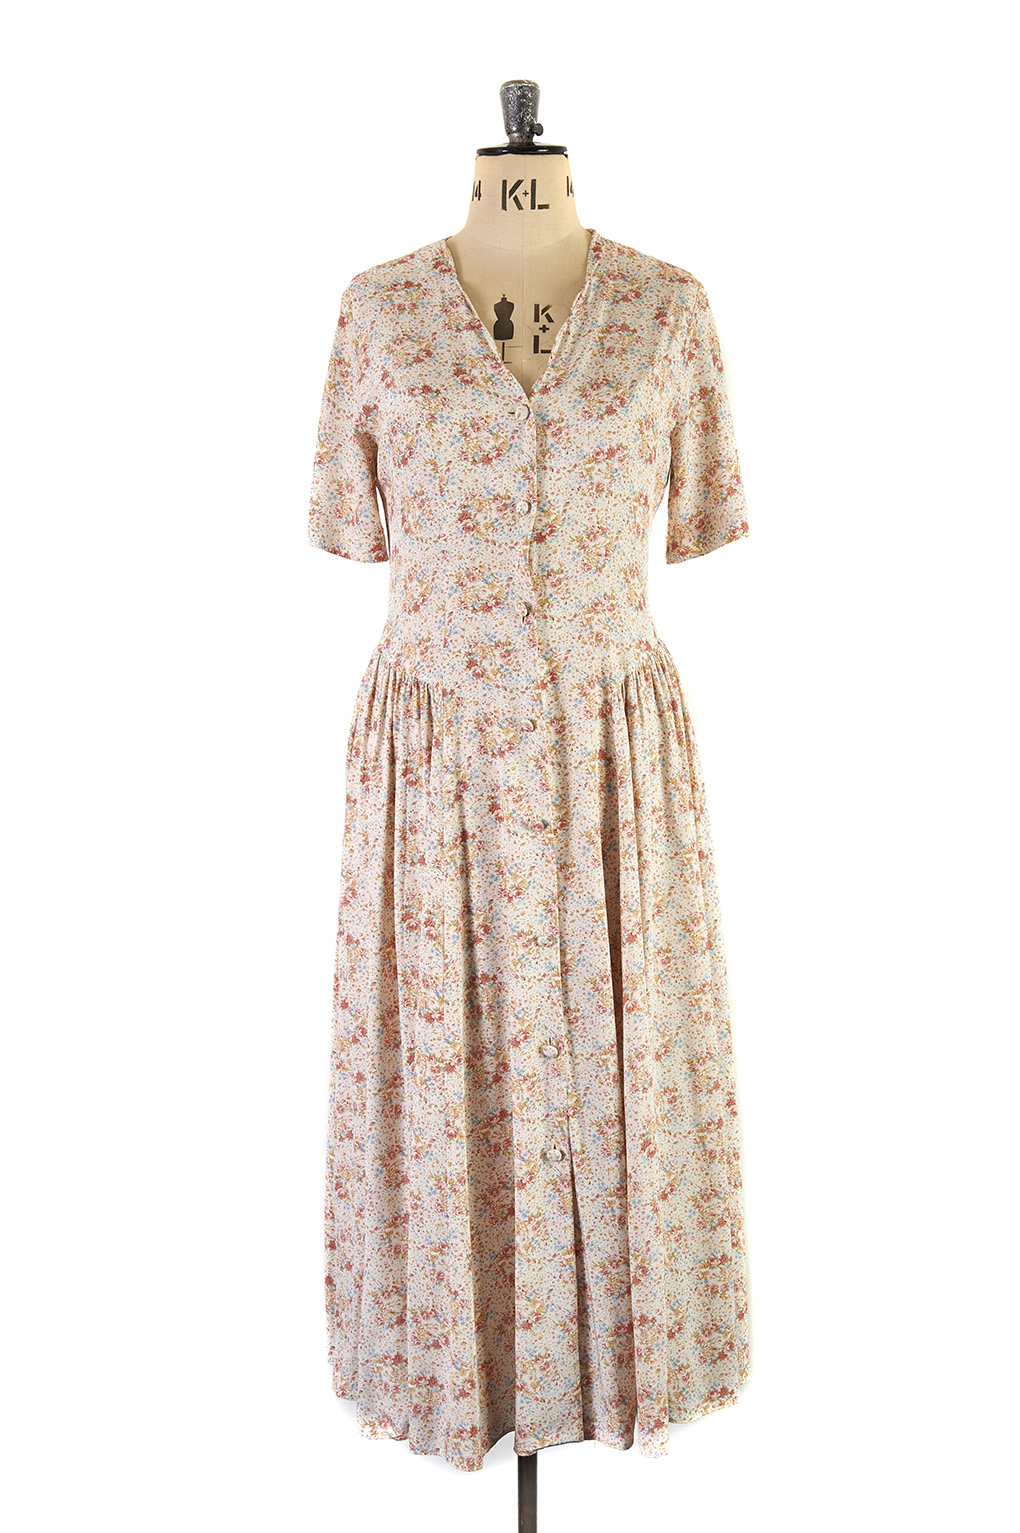 Vintage Laura Ashley Dress by Margot and Hesse